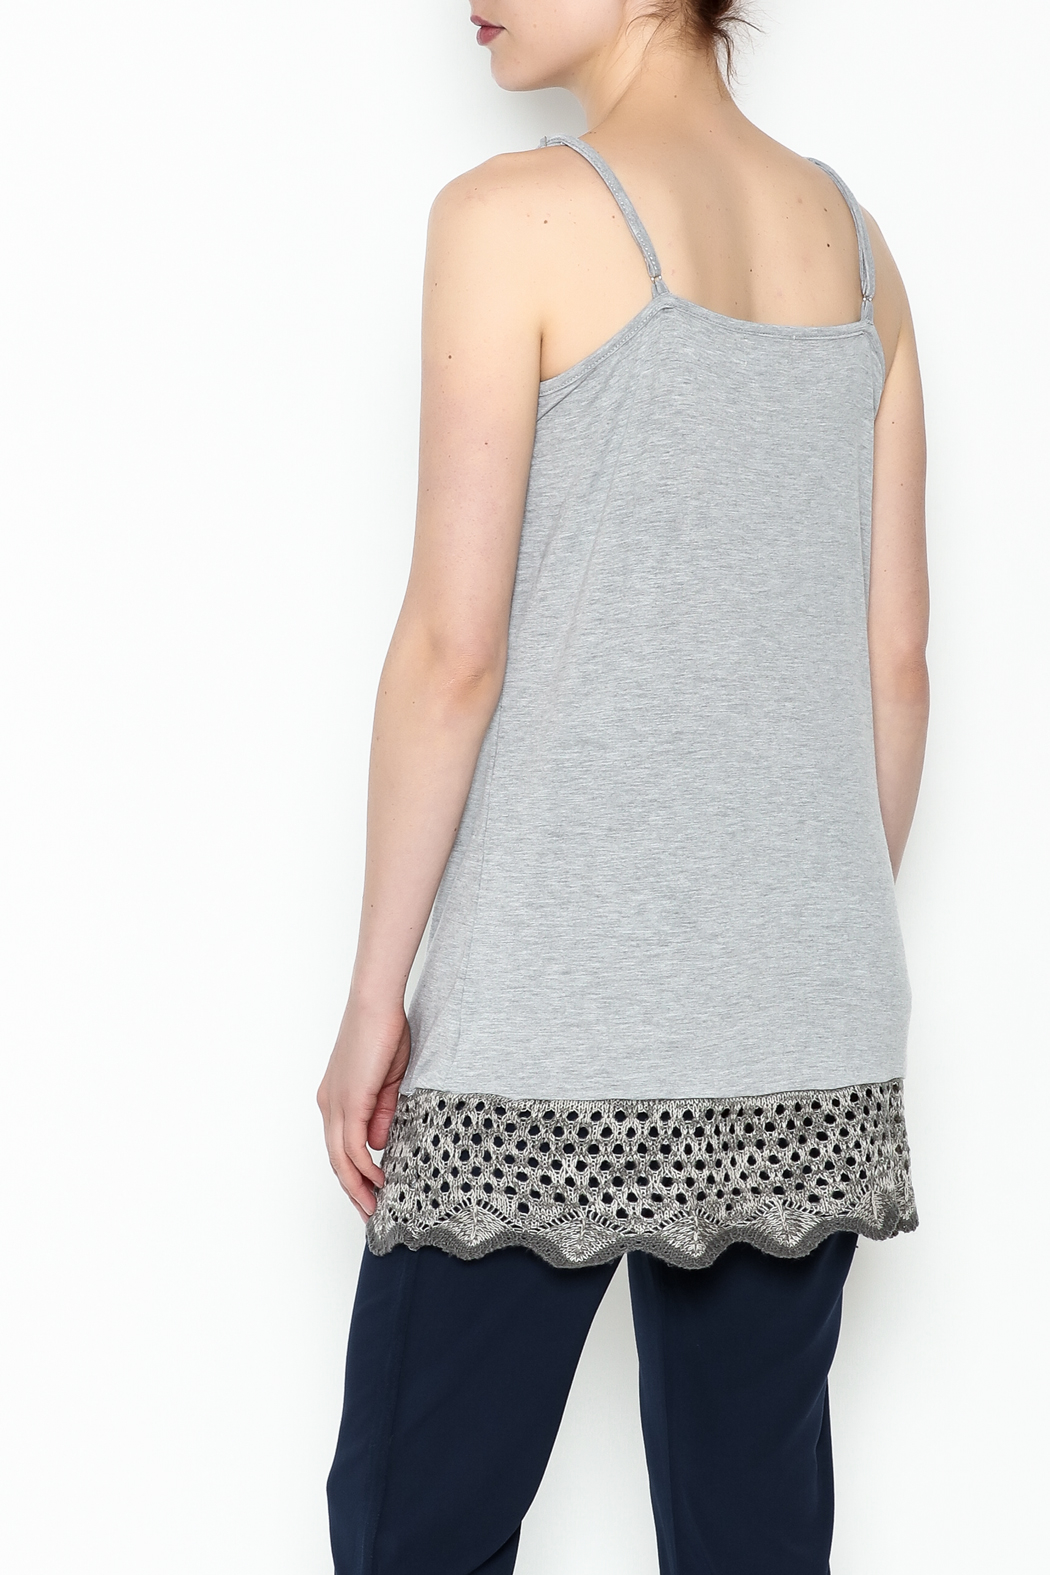 Umgee USA Crochet Tunic Tank - Back Cropped Image